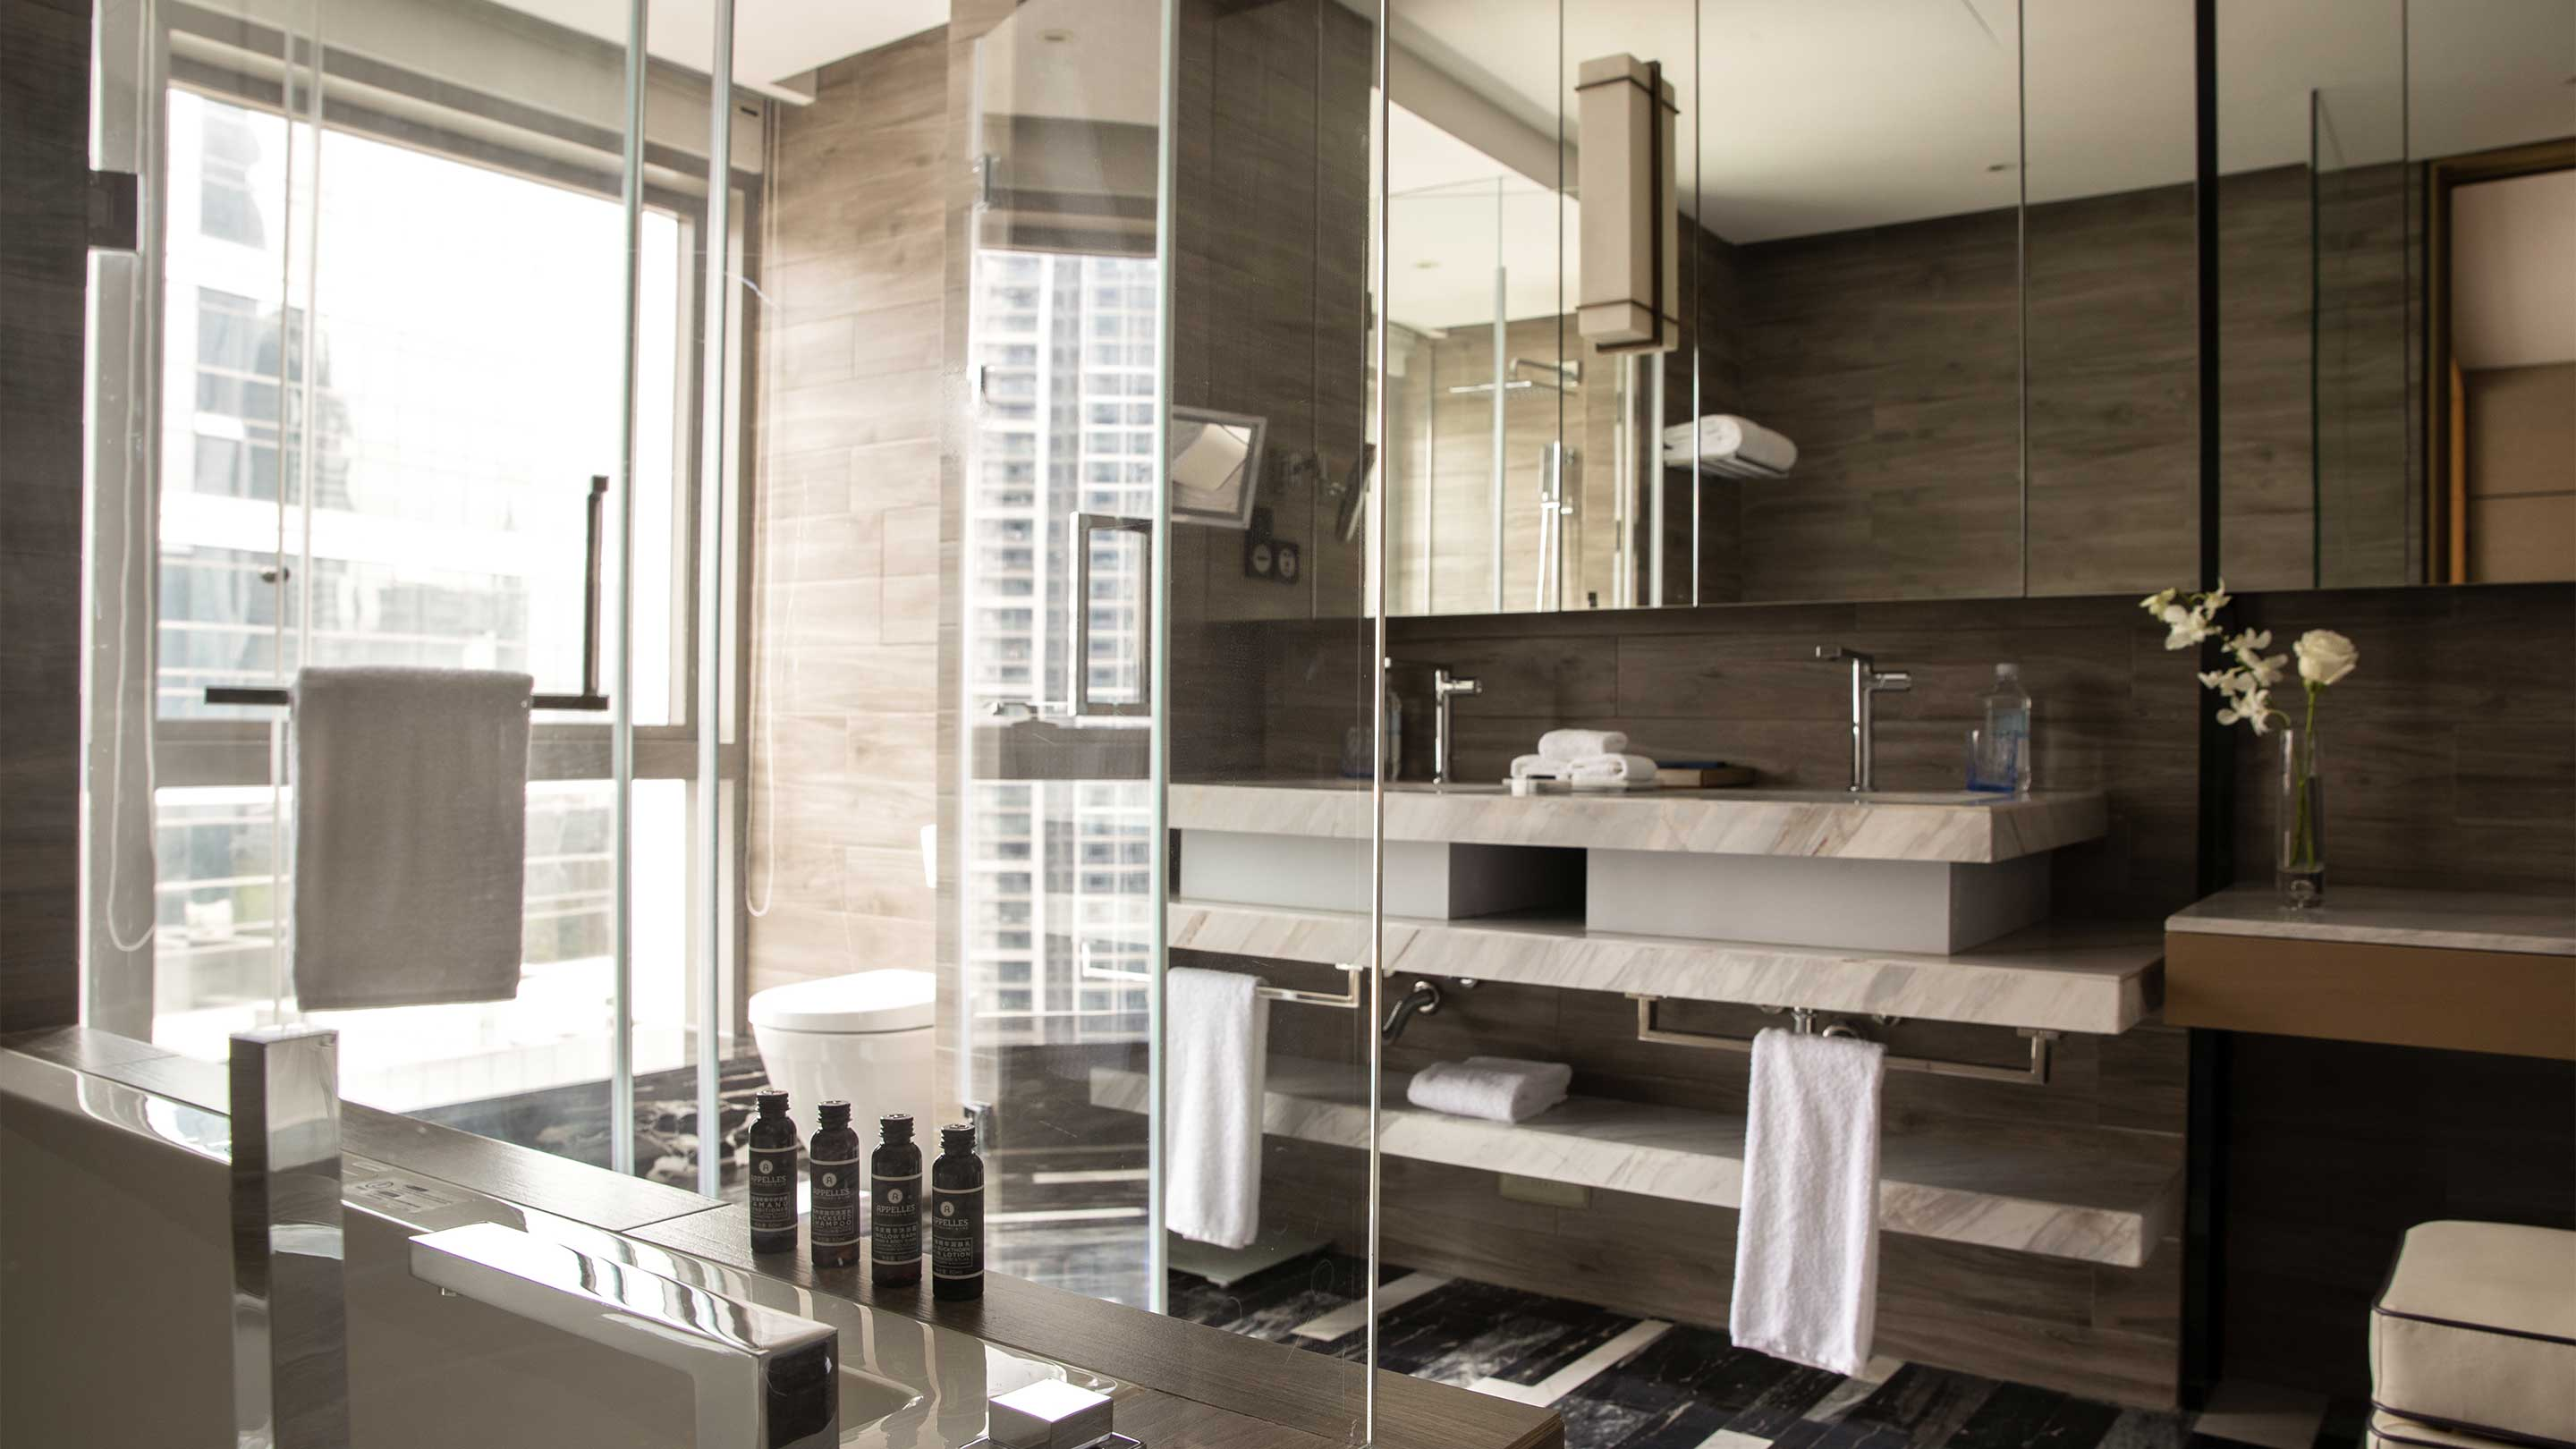 16-9 JUMEIRAH LIVING GUANGZHOU Contemporary 3 bed room suite bathroom 1608